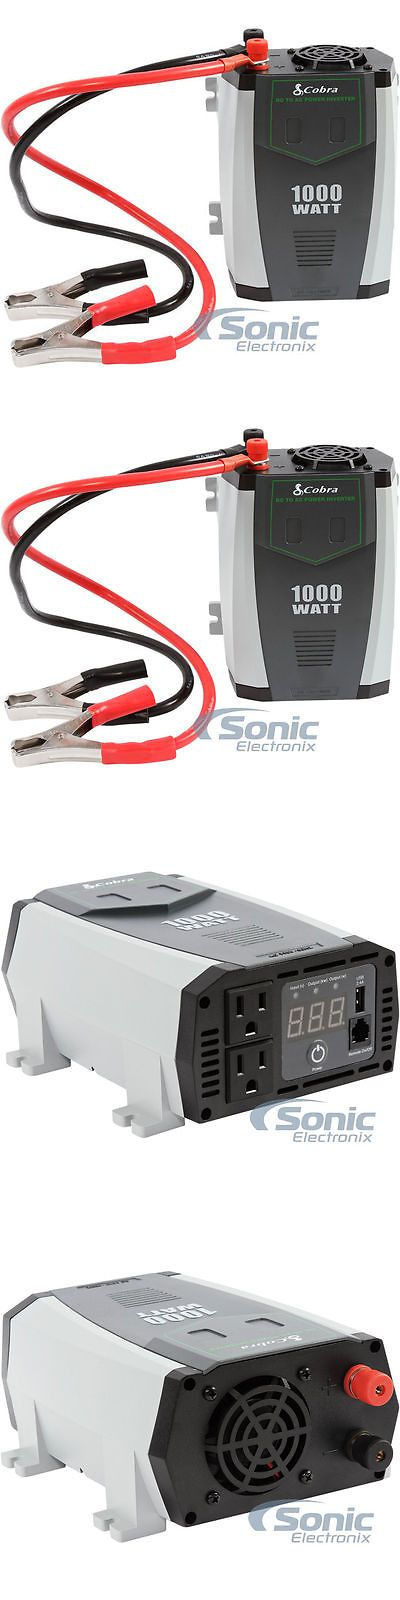 best ideas about inverter ac solar power power inverters cobra cpi1090 1000w rms portable power inverter w usb port and 2